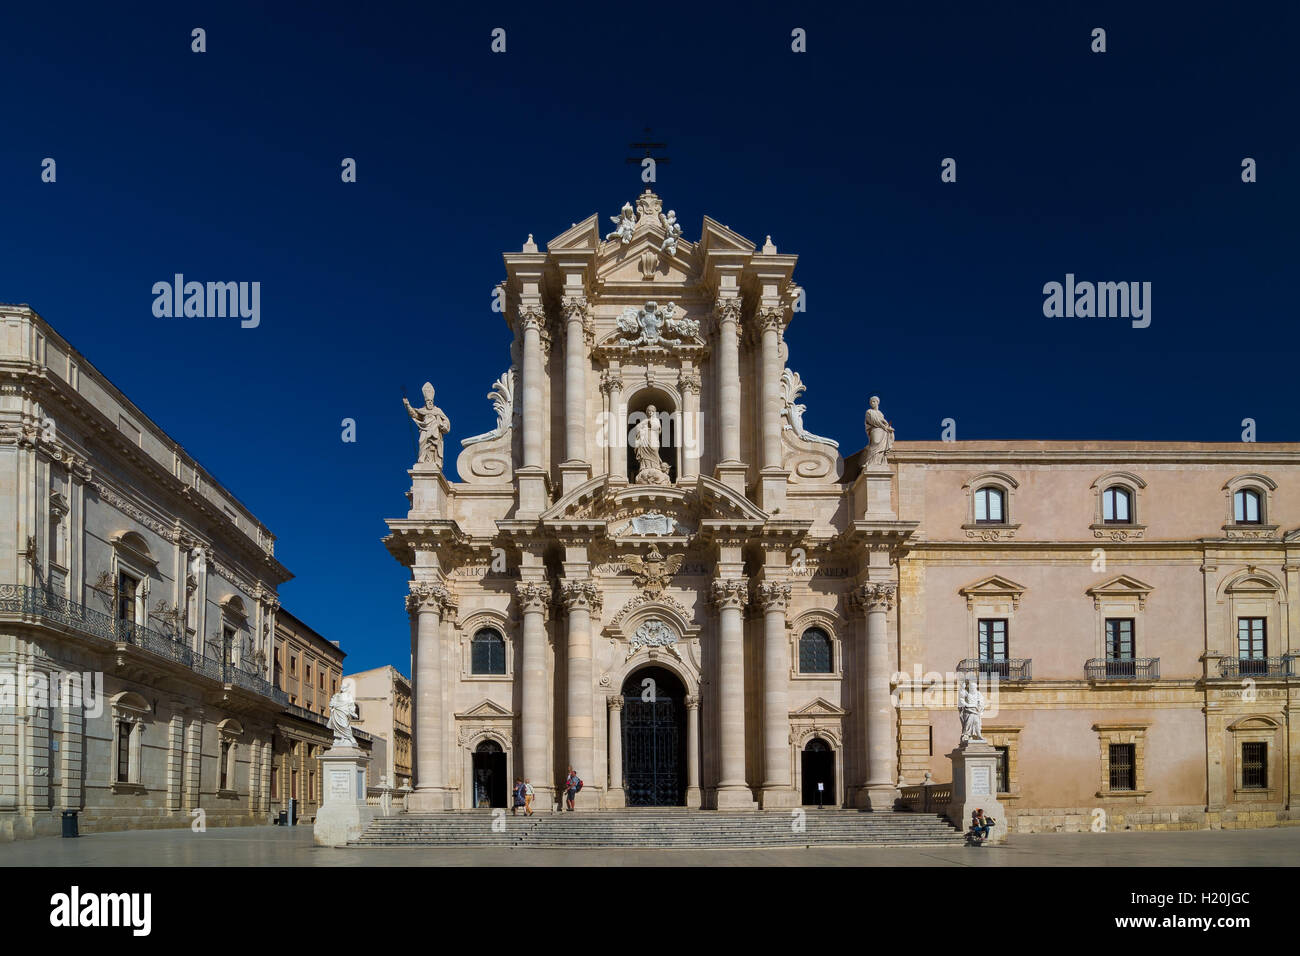 The Cathedral of Syracuse or Duomo di Siracusa is an ancient Catholic church in Syracuse, Sicily. Stock Photo